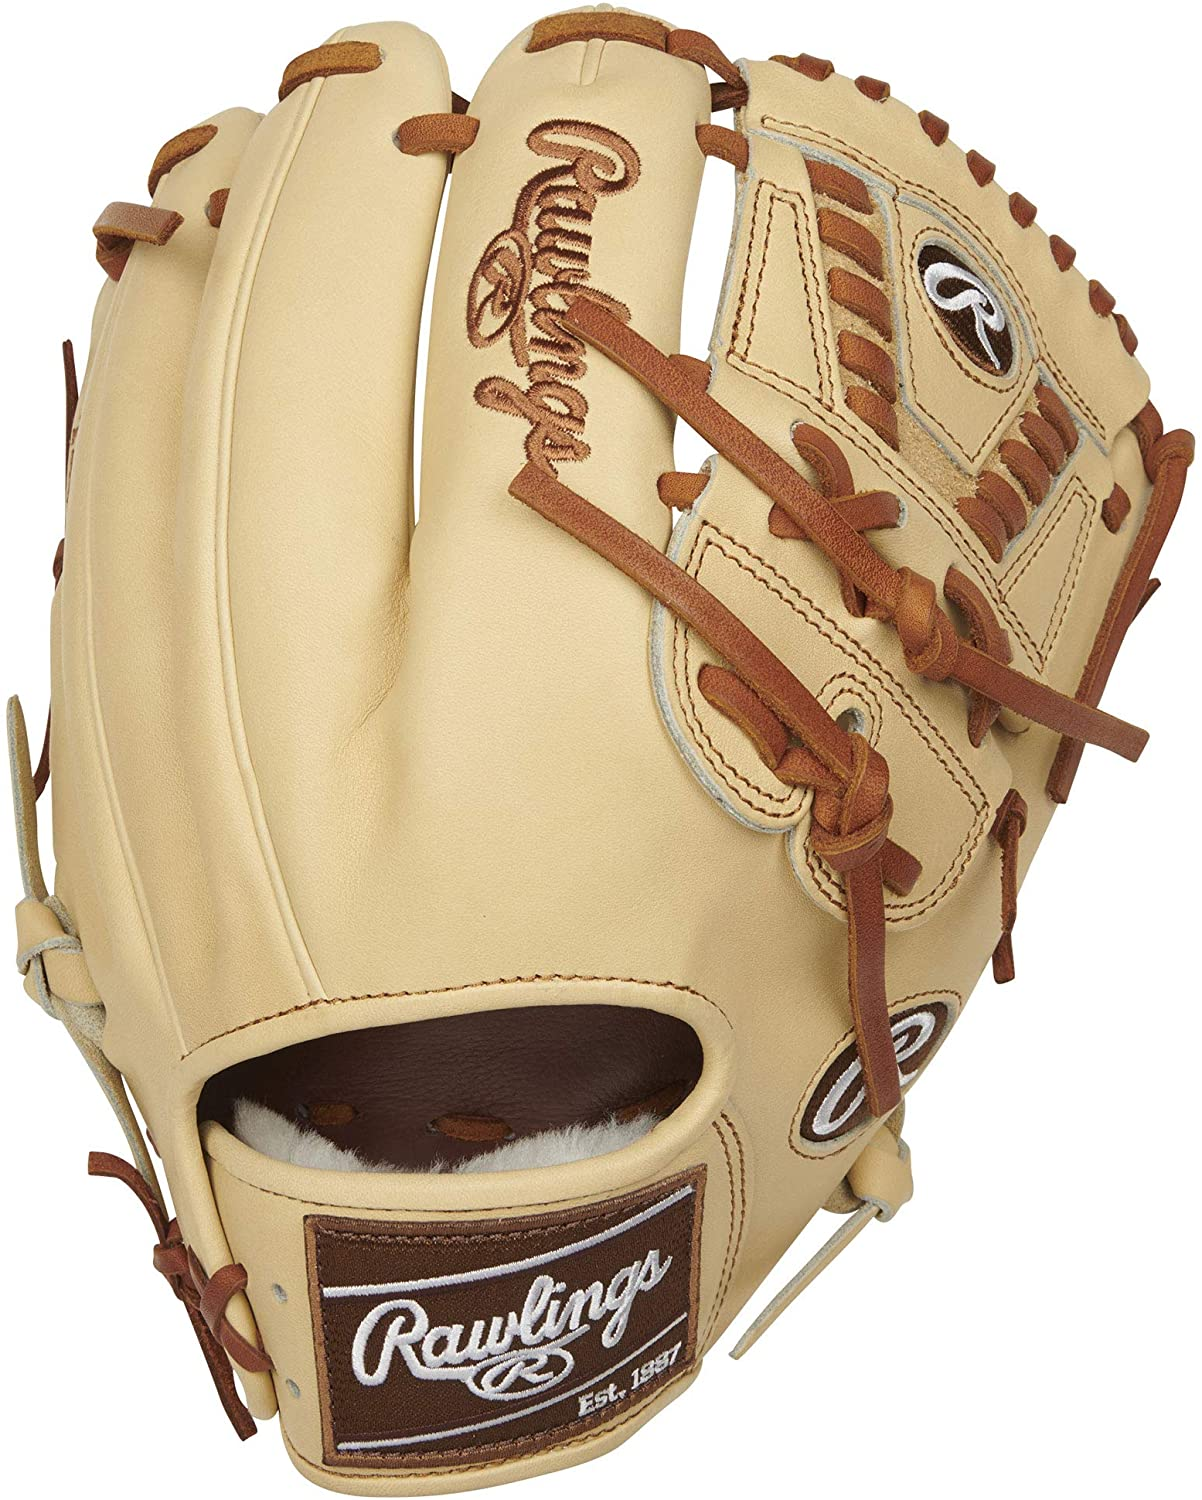 rawlings-pro-preferred-11-75-baseball-glove-1pc-right-hand-throw PROS205-30C-RightHandThrow Rawlings 083321701672 <span>The Pro Preferred line of baseball gloves from Rawlings are known